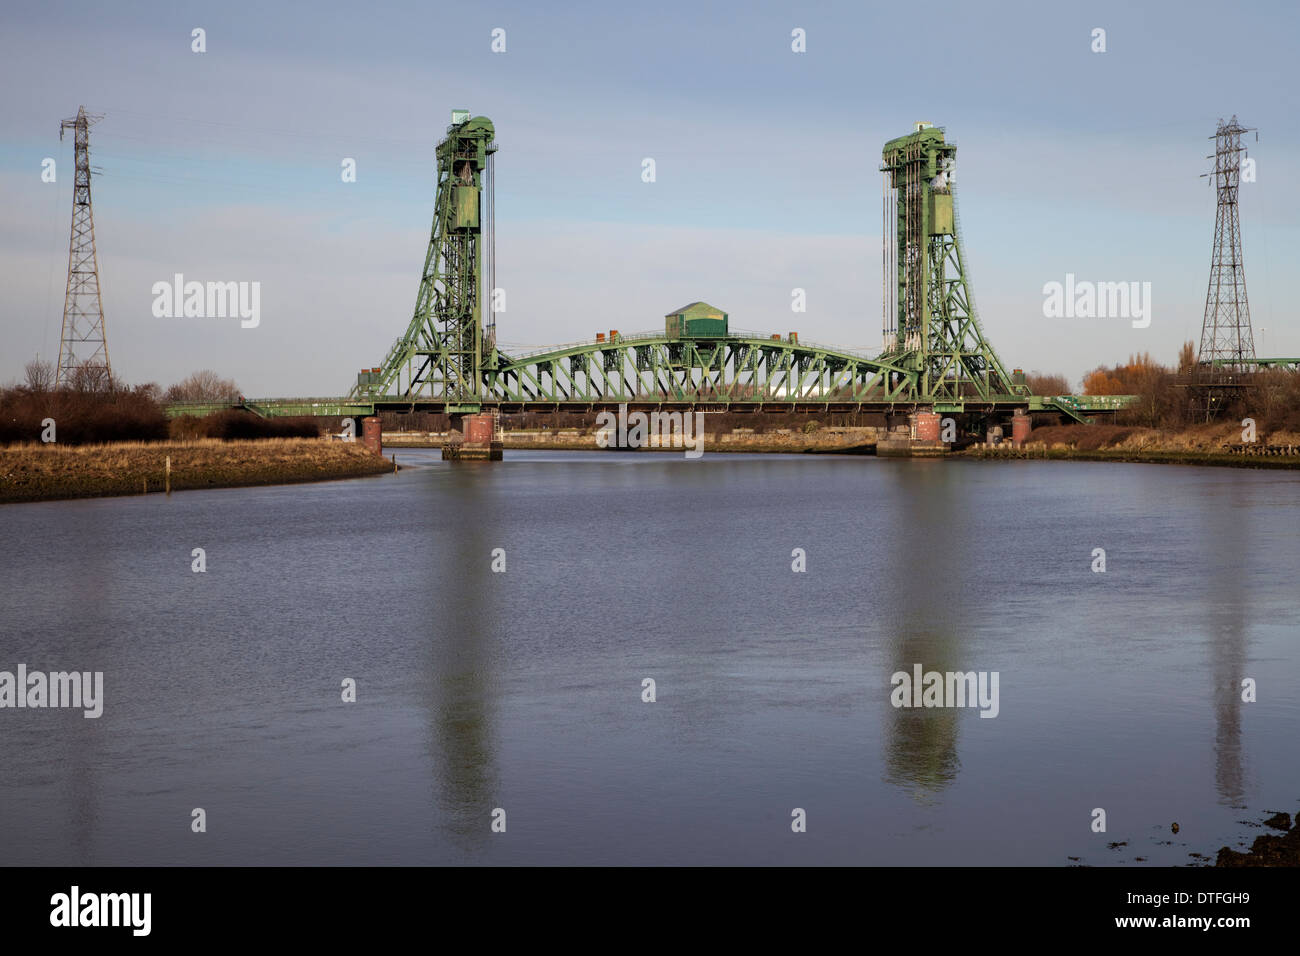 The Tees Newport Bridge is a vertical lift bridge spanning the River Tees between Middlesbrough and Stockton-on-Tees in England. Stock Photo